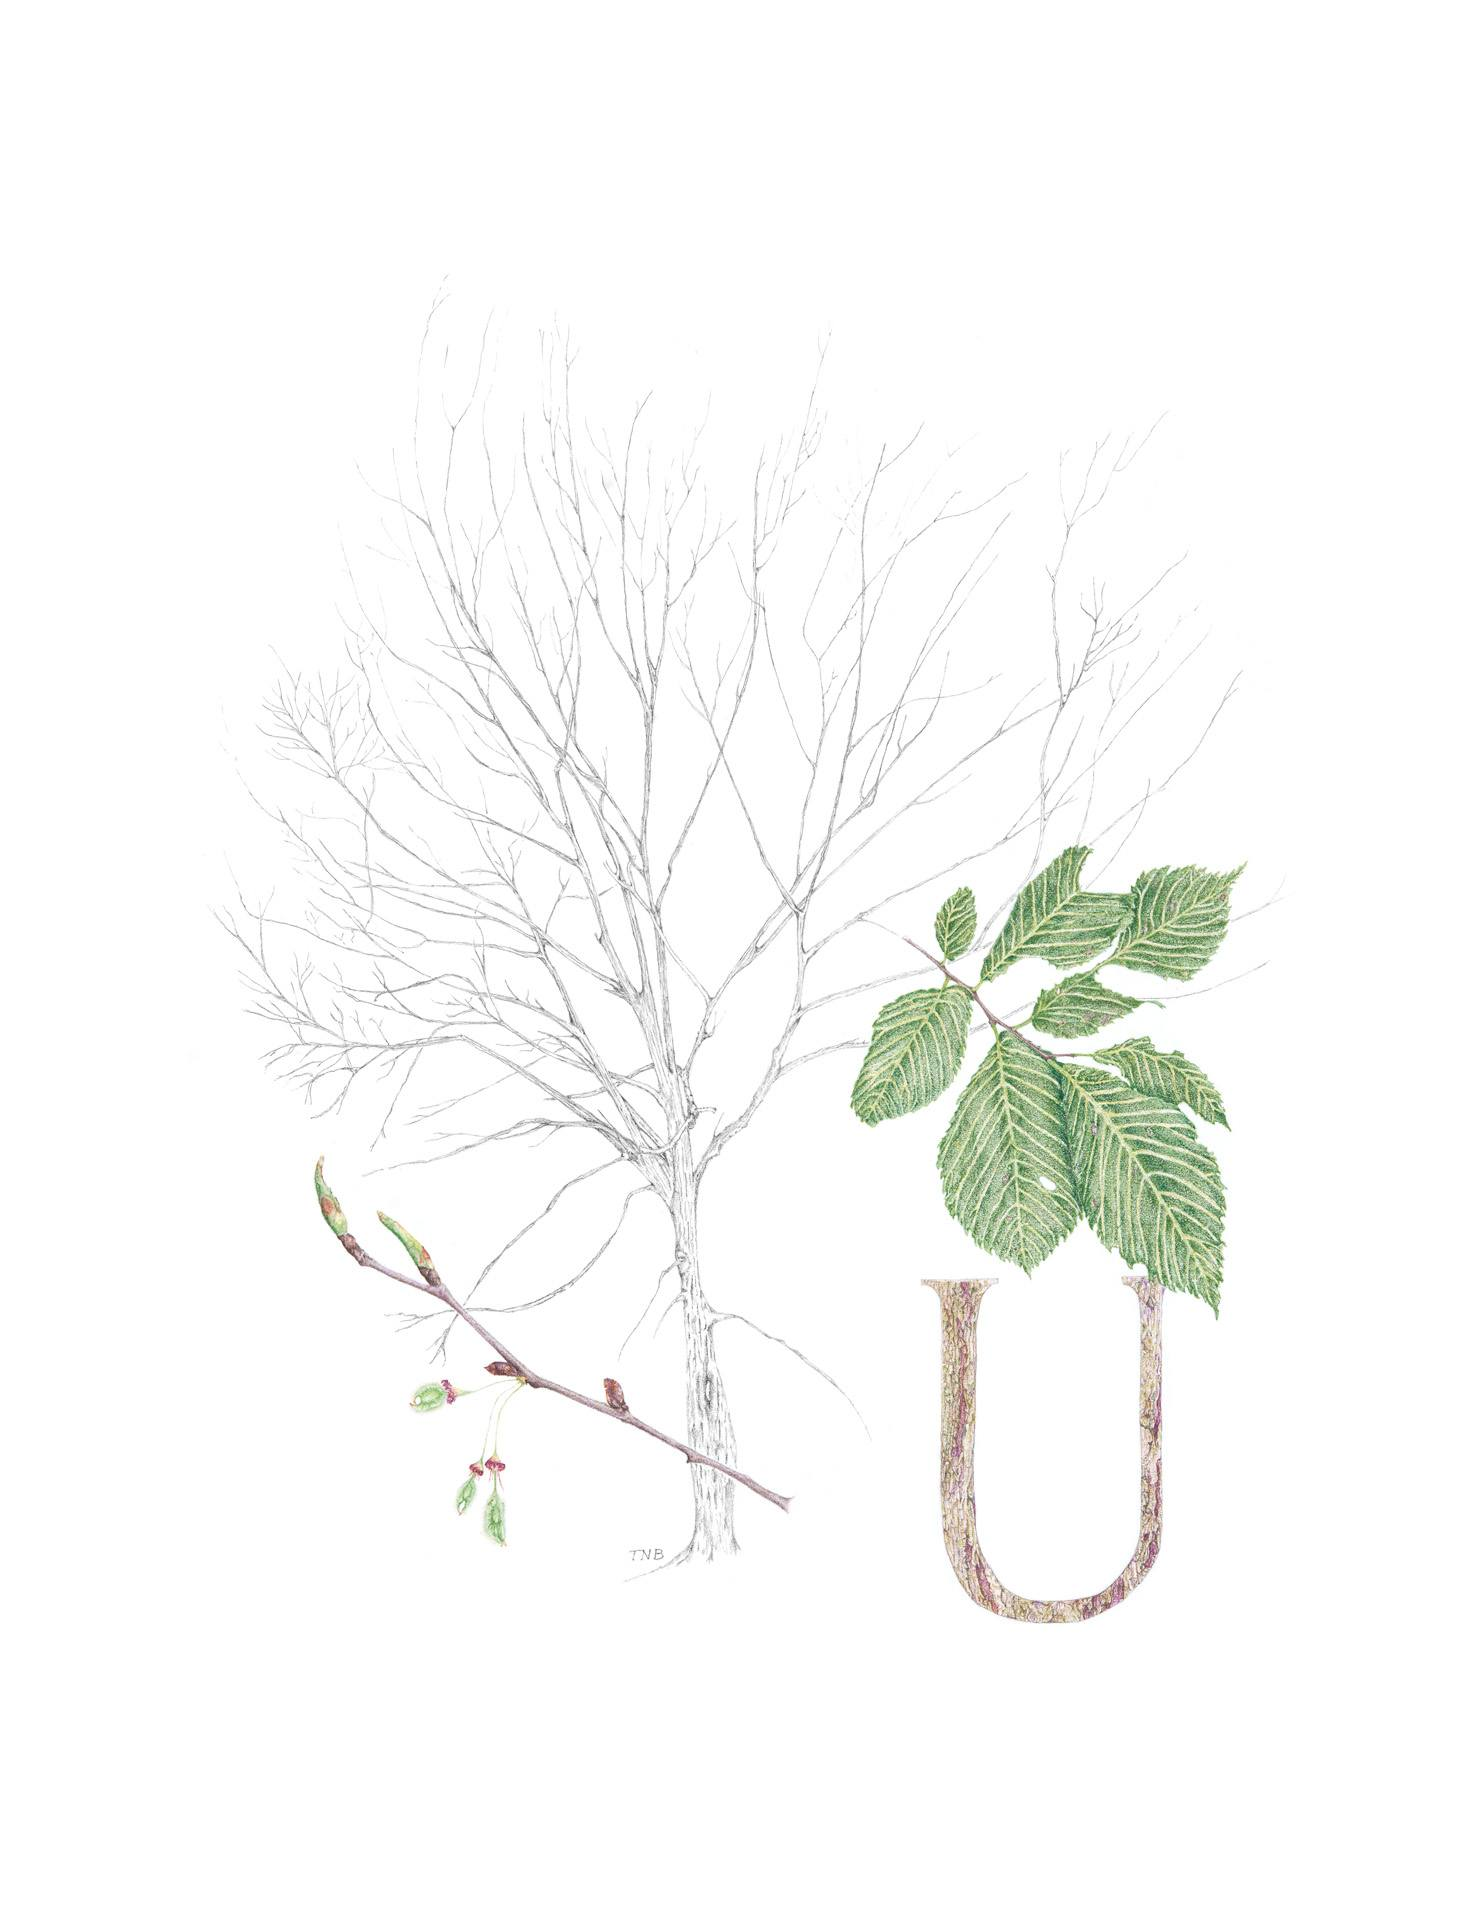 Ulmus americana, American elm, Colored pencil and graphite graphitint by Teresa Bradley